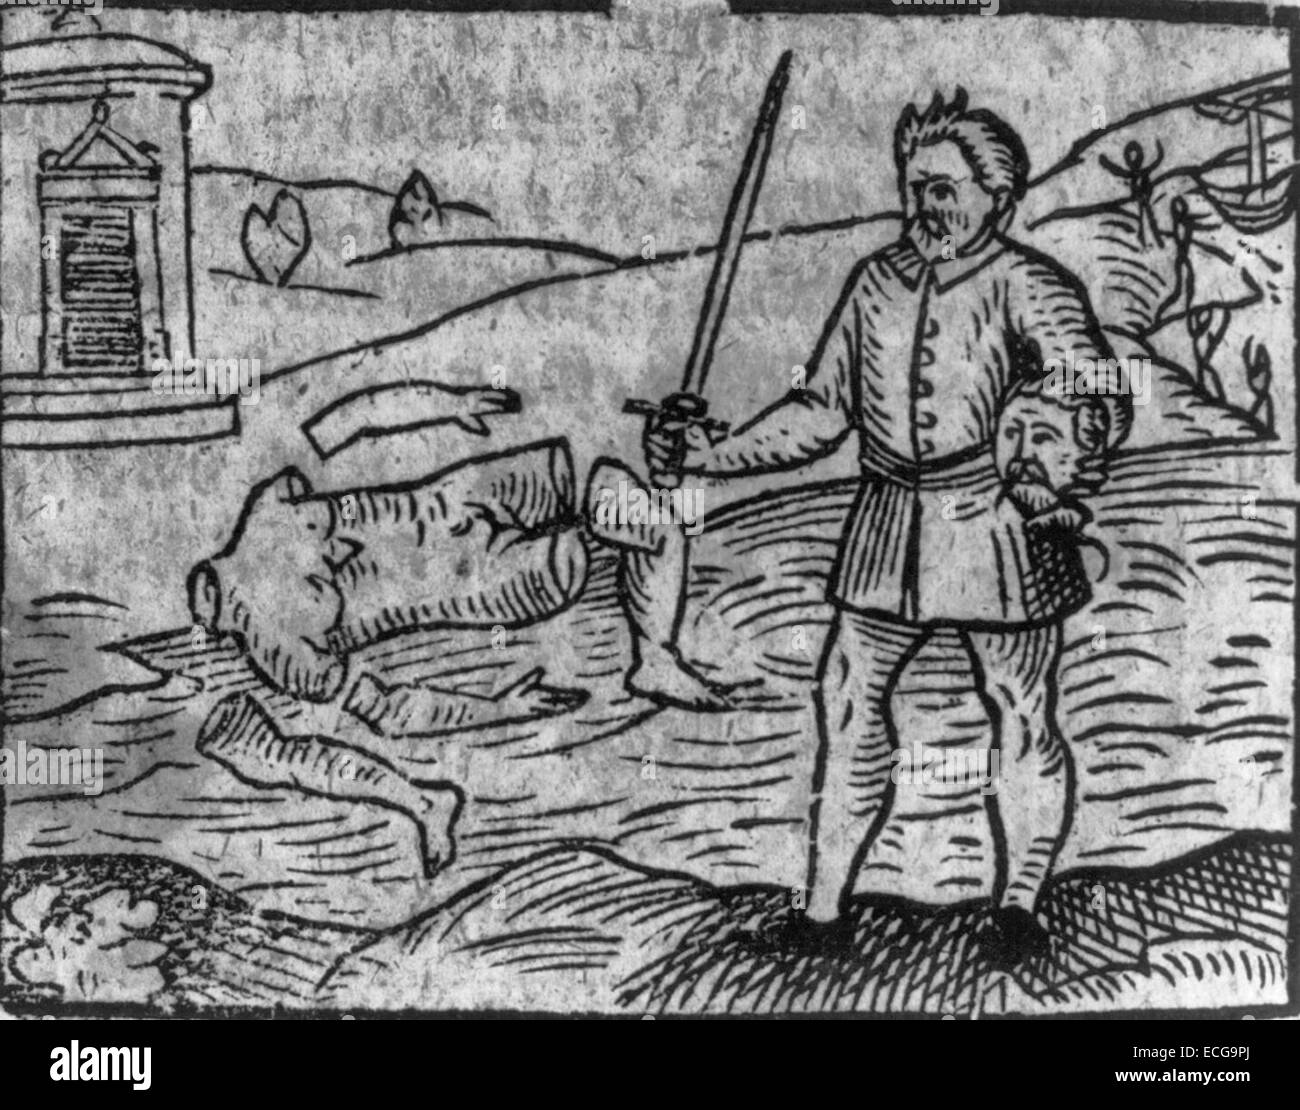 Man holding sword and head of decapitated, dismembered body in background, woodcut, circa 1599 - Stock Image